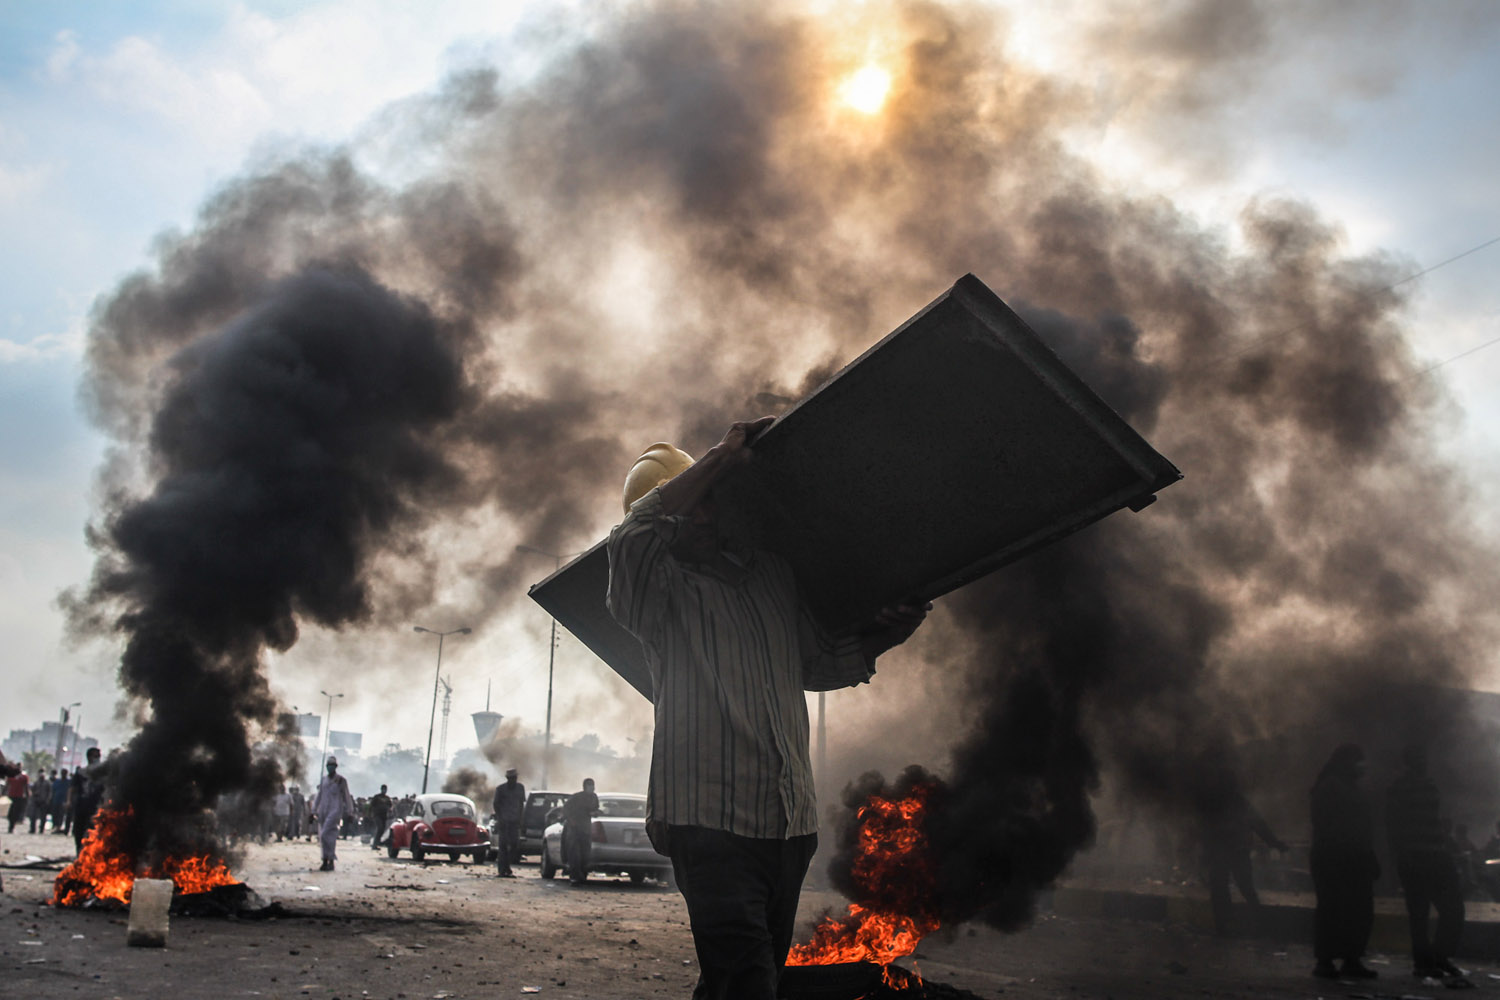 A Morsi supporter carries a steel door to help bolster defenses at the frontlines.